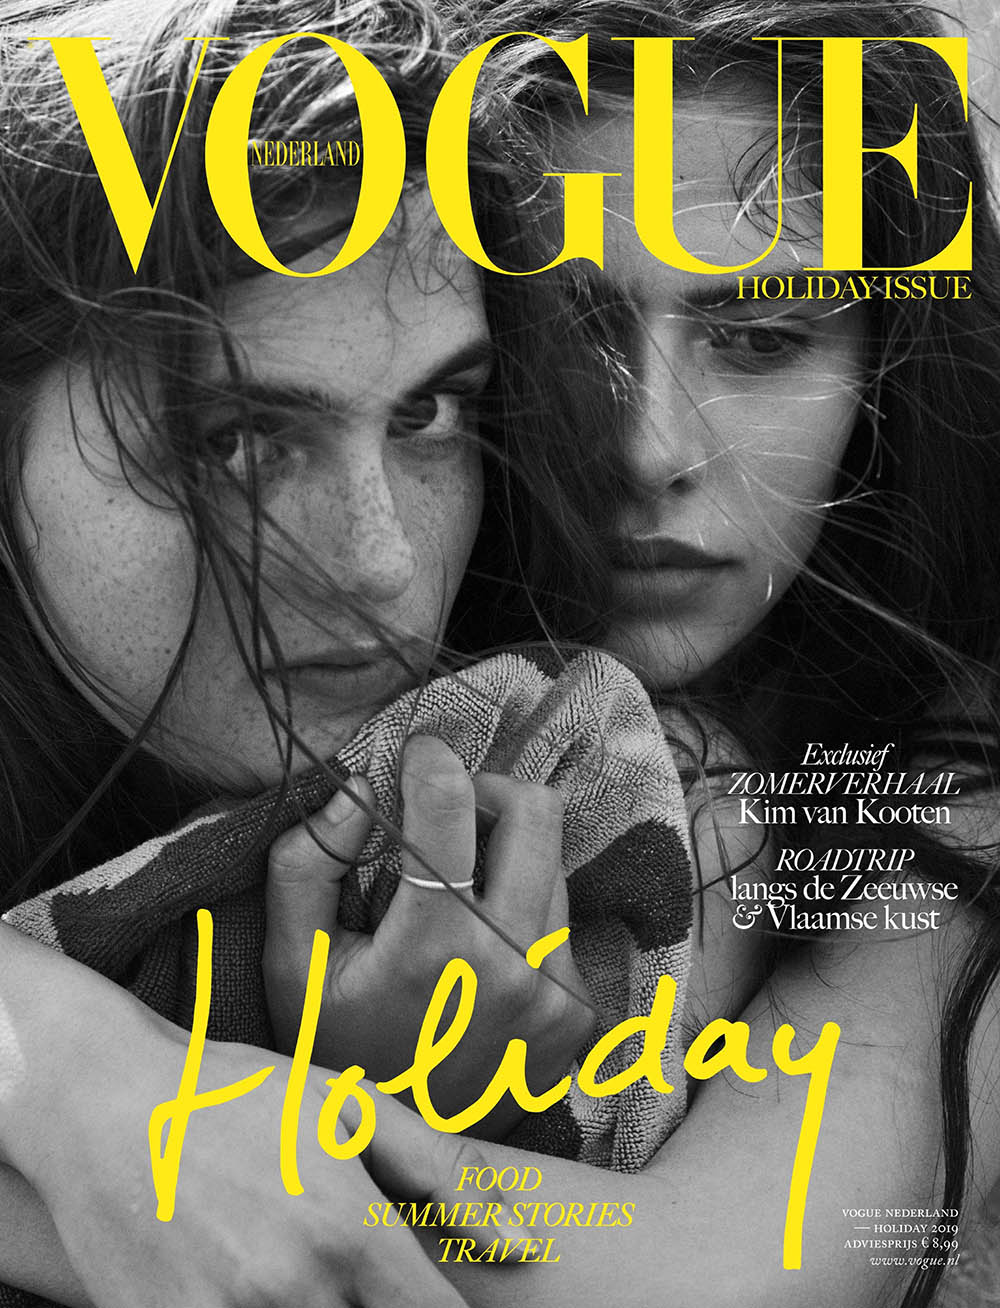 Jools Verschuuren and Jip Ter Laak cover Vogue Netherlands ''Holiday Issue'' 2019 by Paul Bellaart